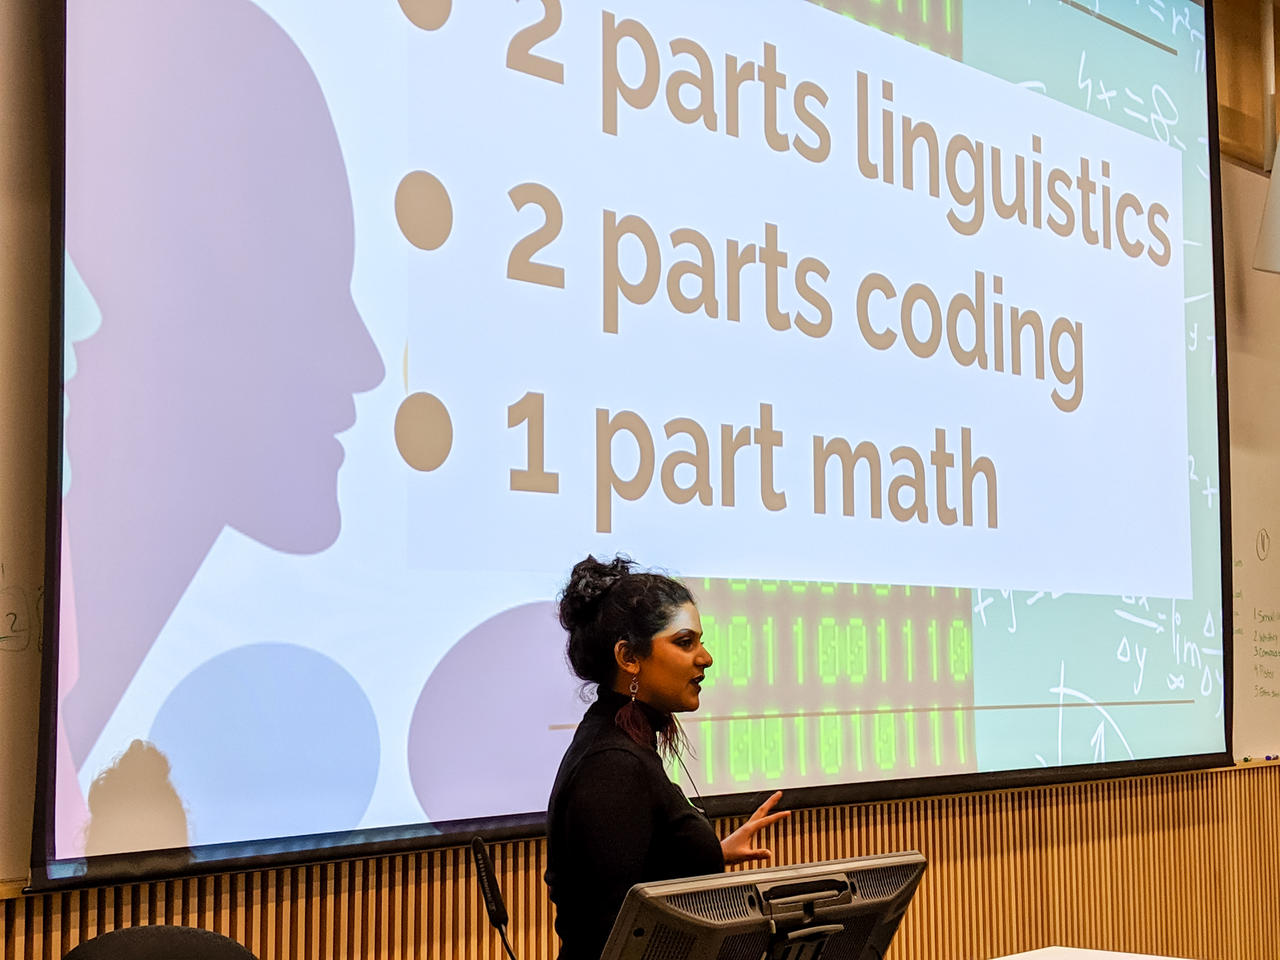 Vasundhara is standing and presenting in front of a screen where one of xyr slides is projected. The slide has three bullet points that say: 2 parts linguistics, 2 parts coding and 1 part math, which is xyr formula for xyr personal sweet spot with computational linguistics.